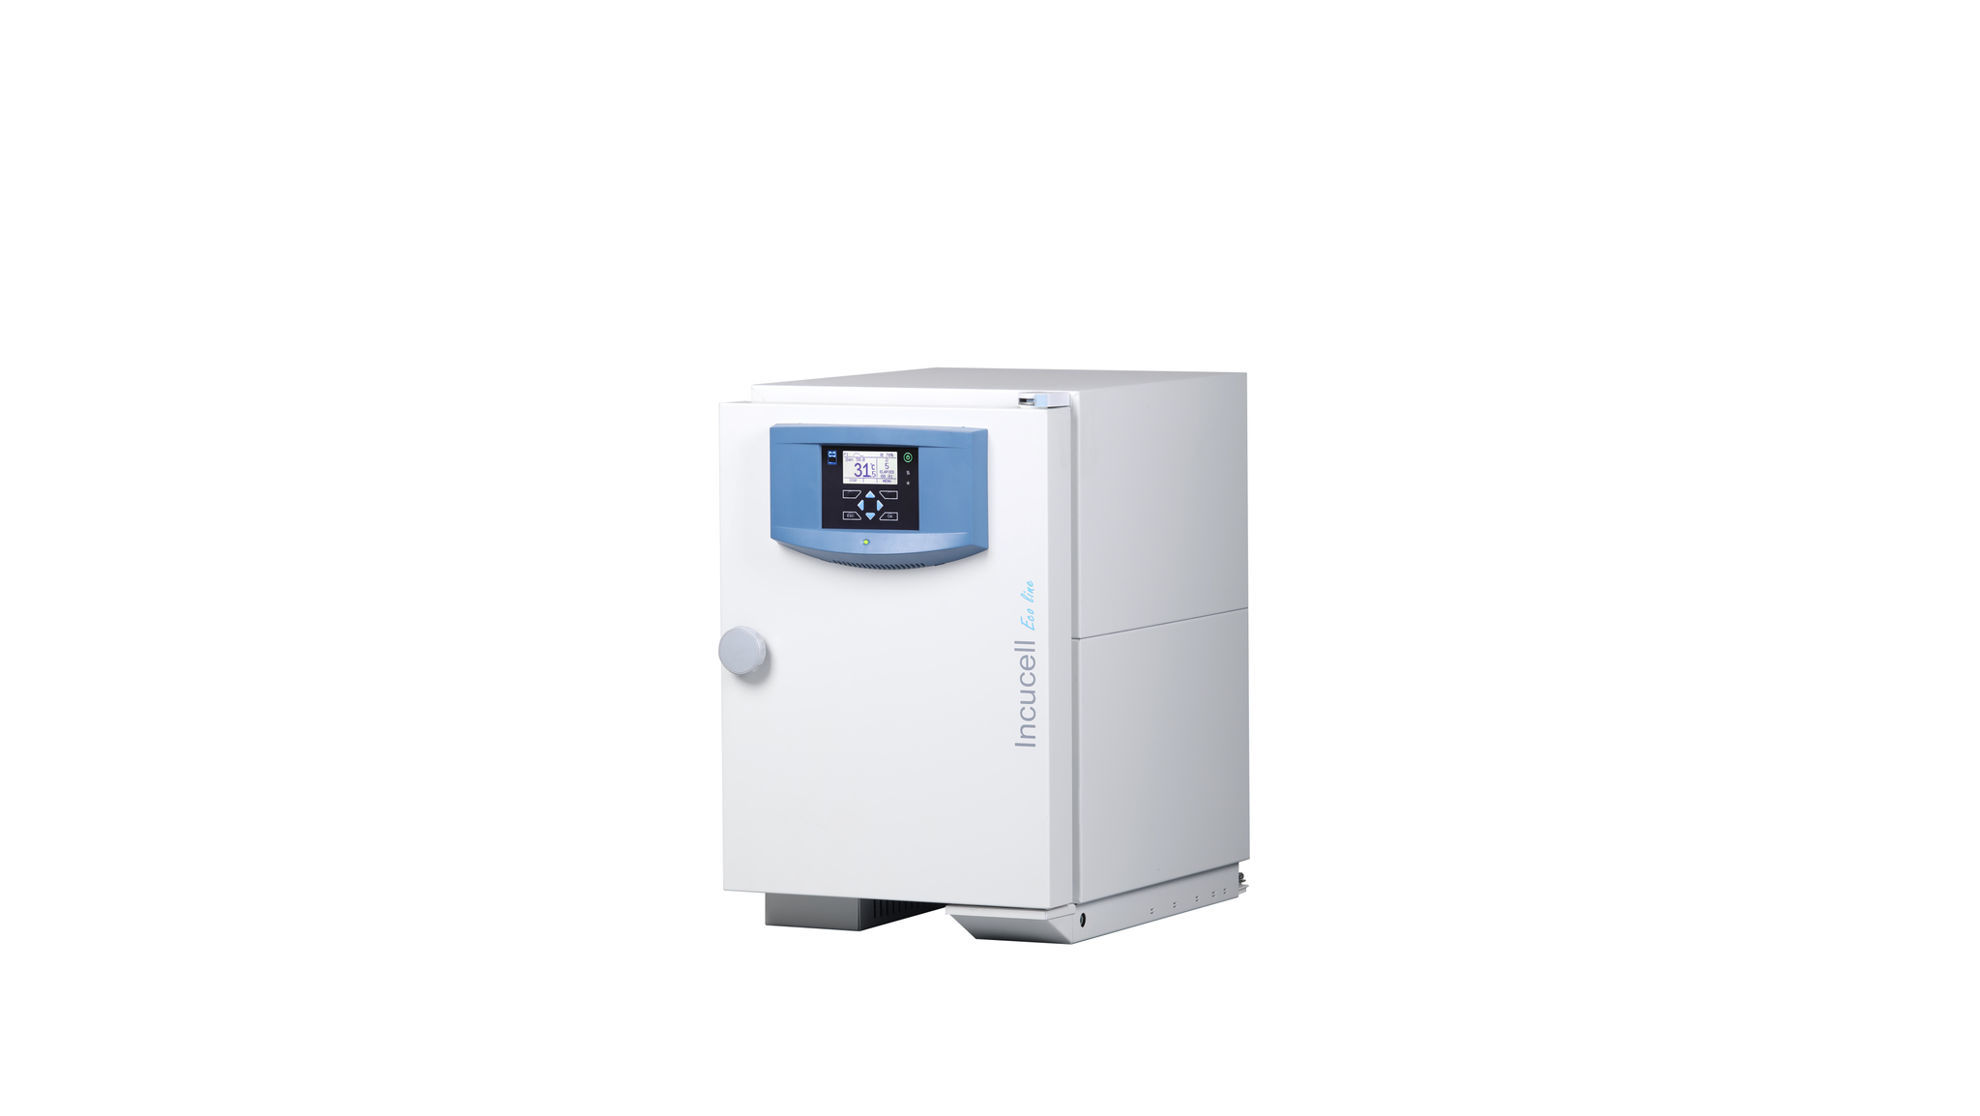 Picture of BMT Incucell ECO Gravity Convection Incubators - MC000220